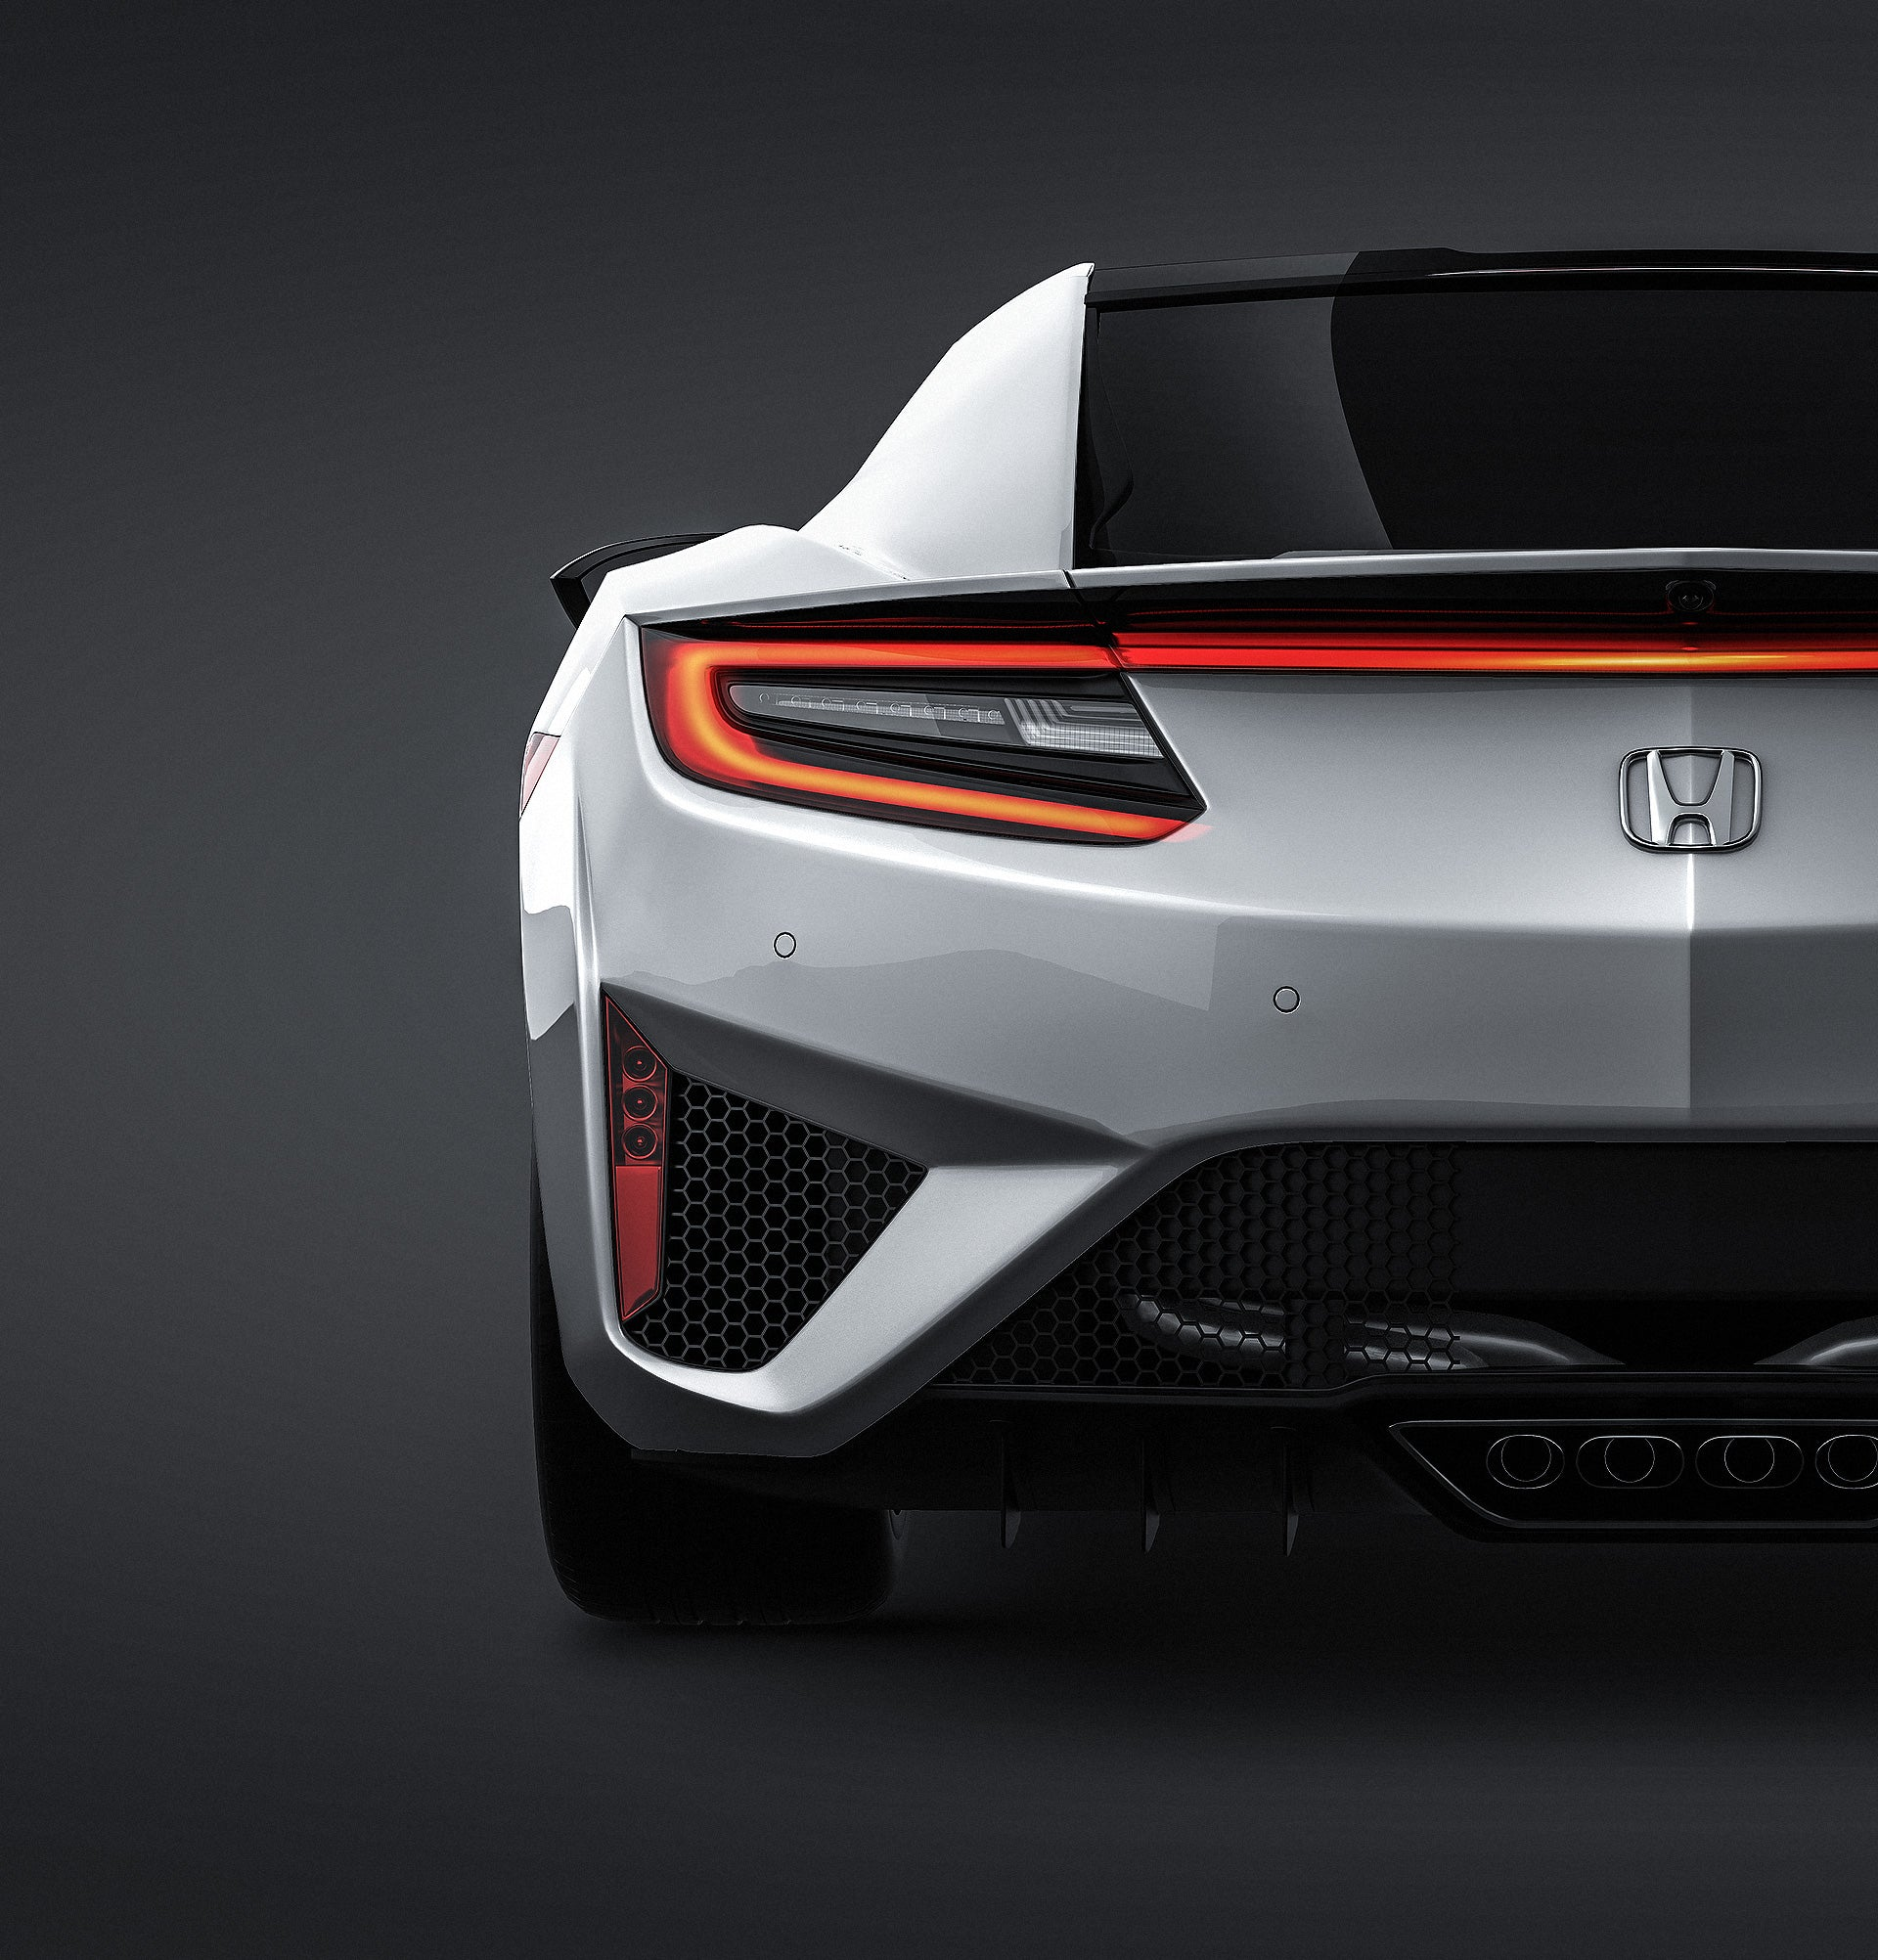 Honda NSX 2016 glossy finish - all sides Car Mockup Template.psd